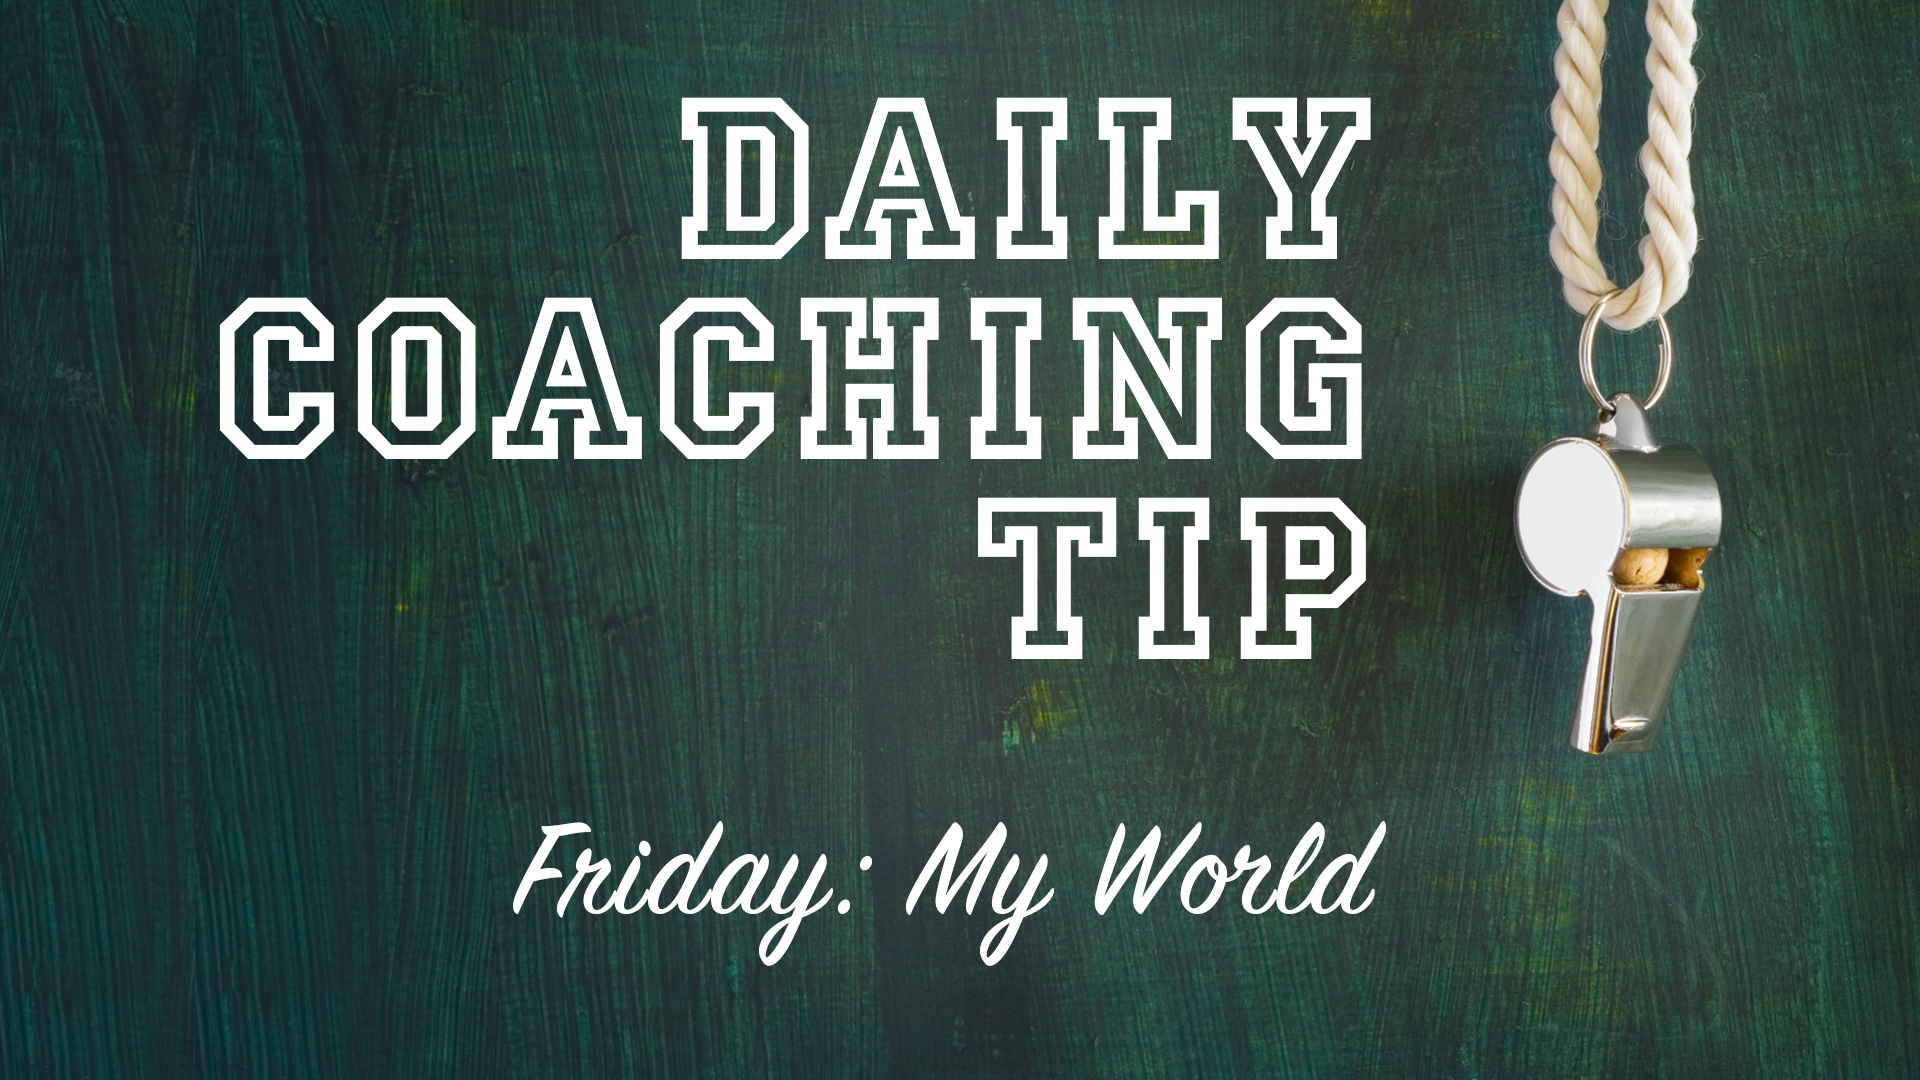 Daily Coaching Tip, Friday, May 20, 2016